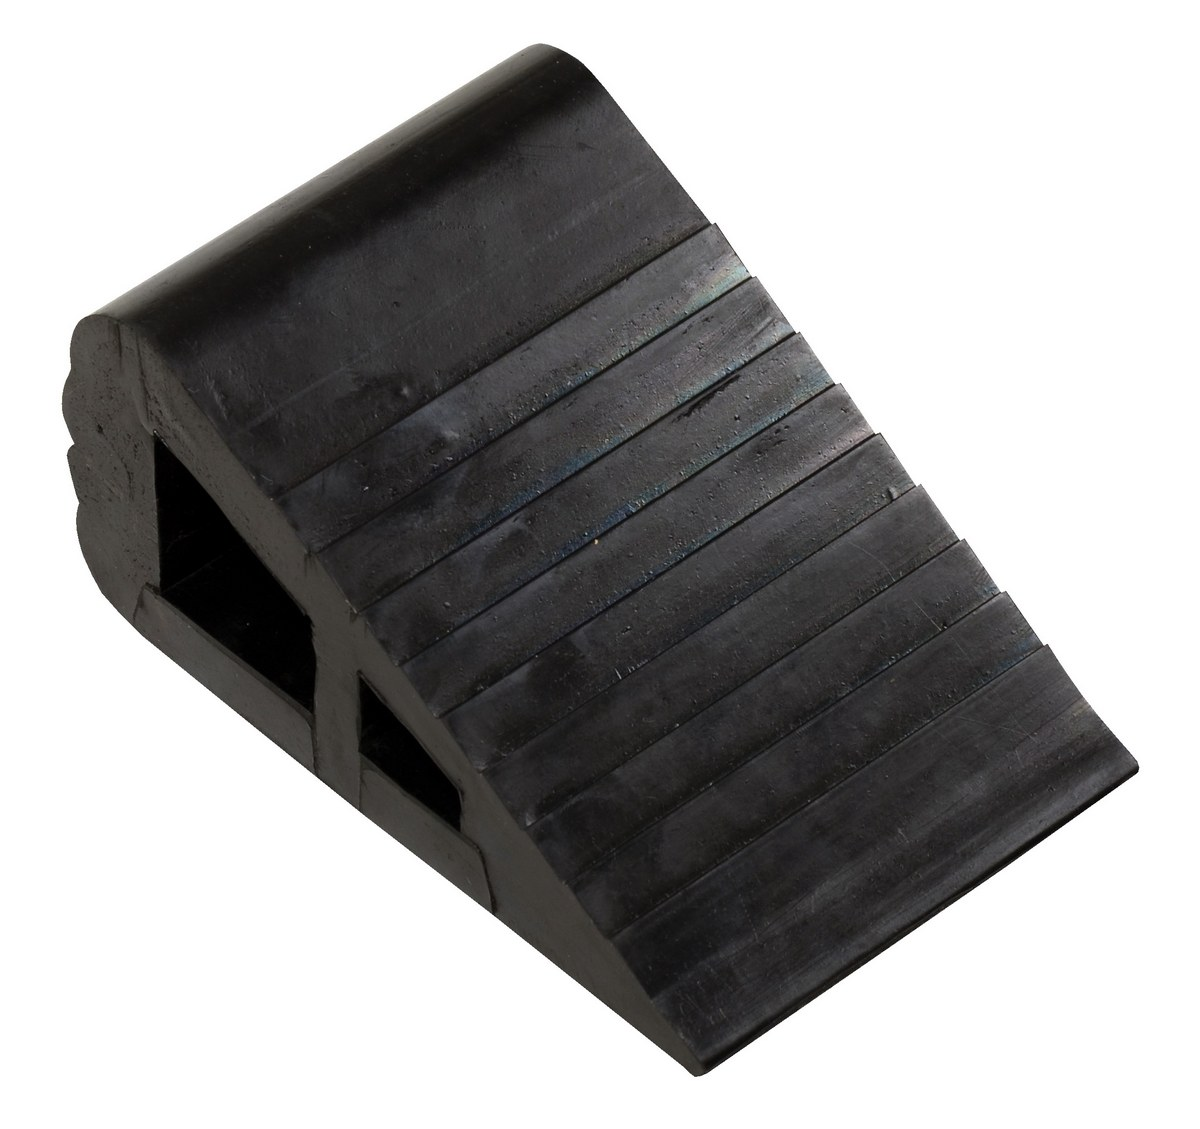 Vestil RBW-2 Industrial Rubber Wedges